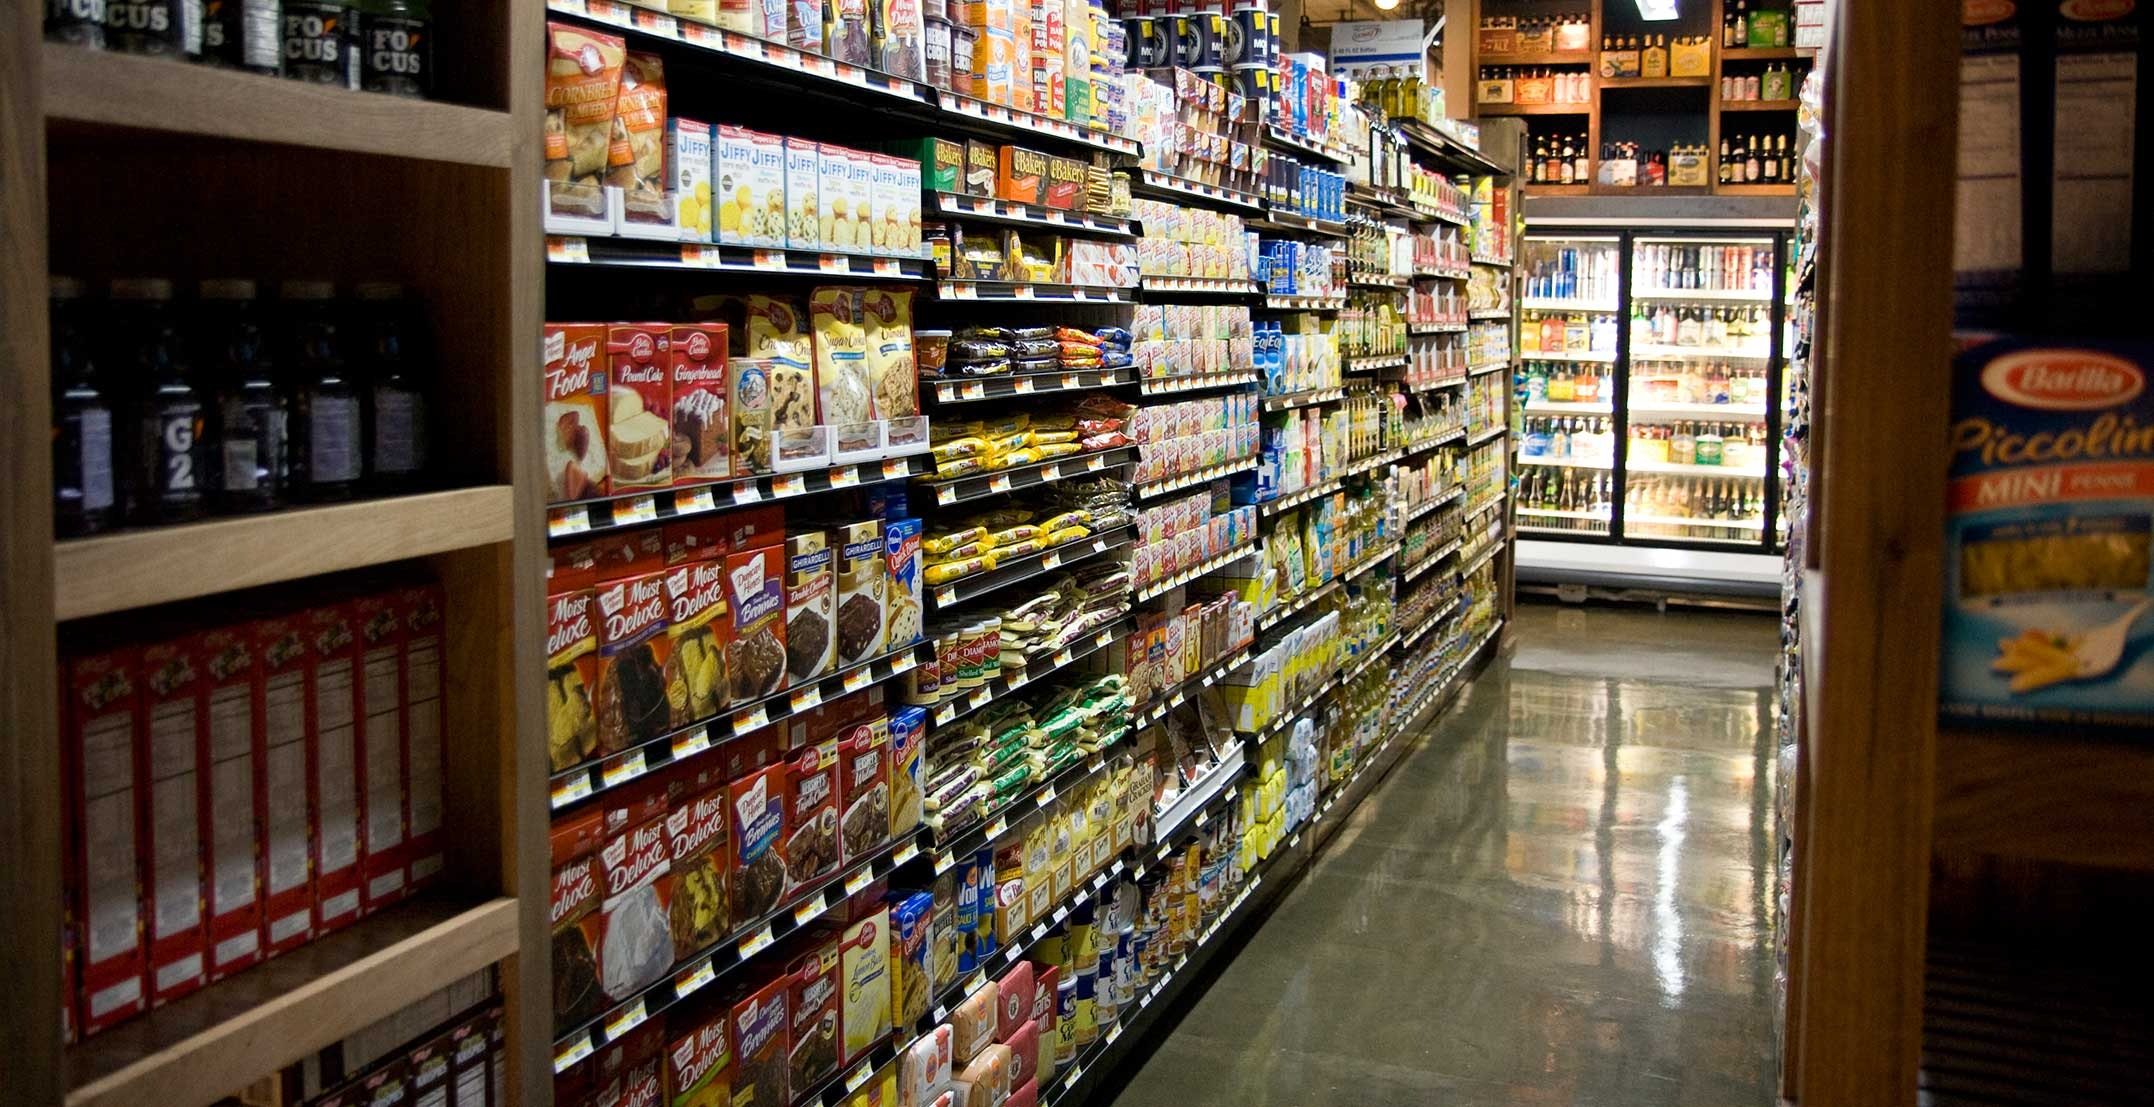 Where Are Dates In A Grocery Store